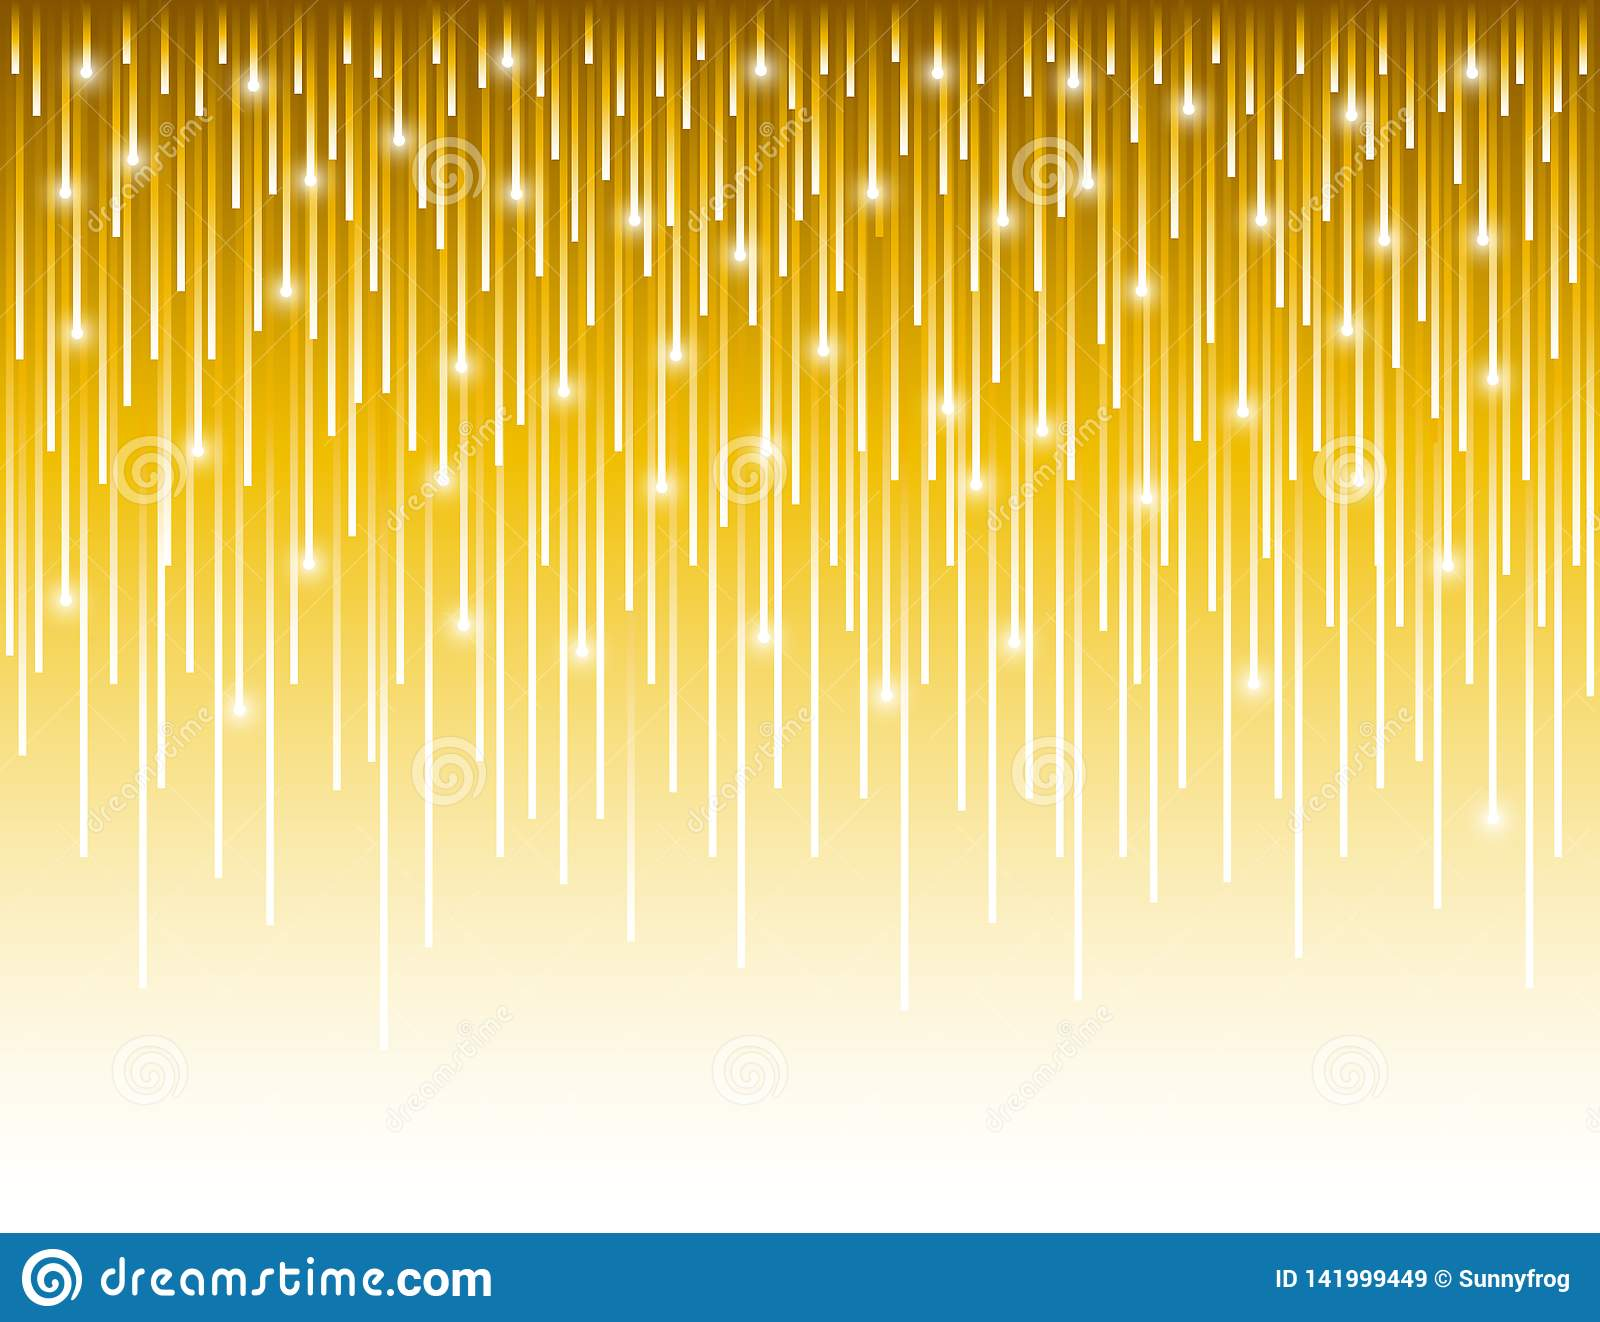 Abstract modern background with golden vertical lines. Backgrounds composed of glowing gold lines. Can be used for scrap booking,